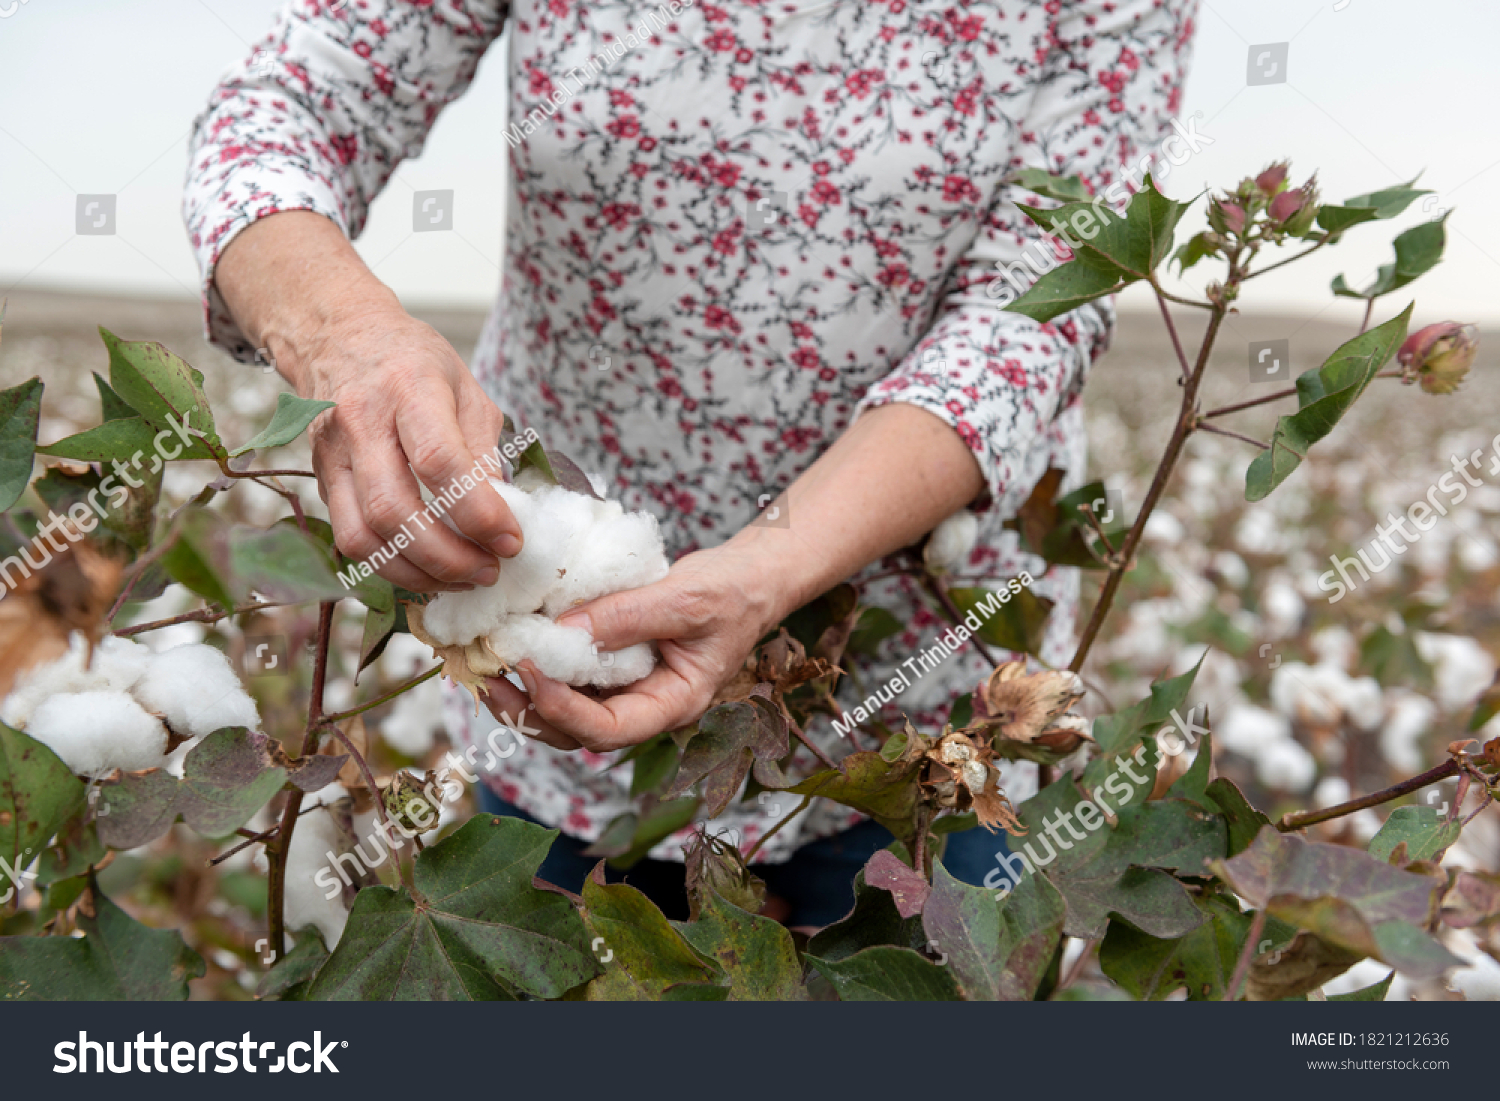 stock-photo-woman-harvesting-cotton-in-t